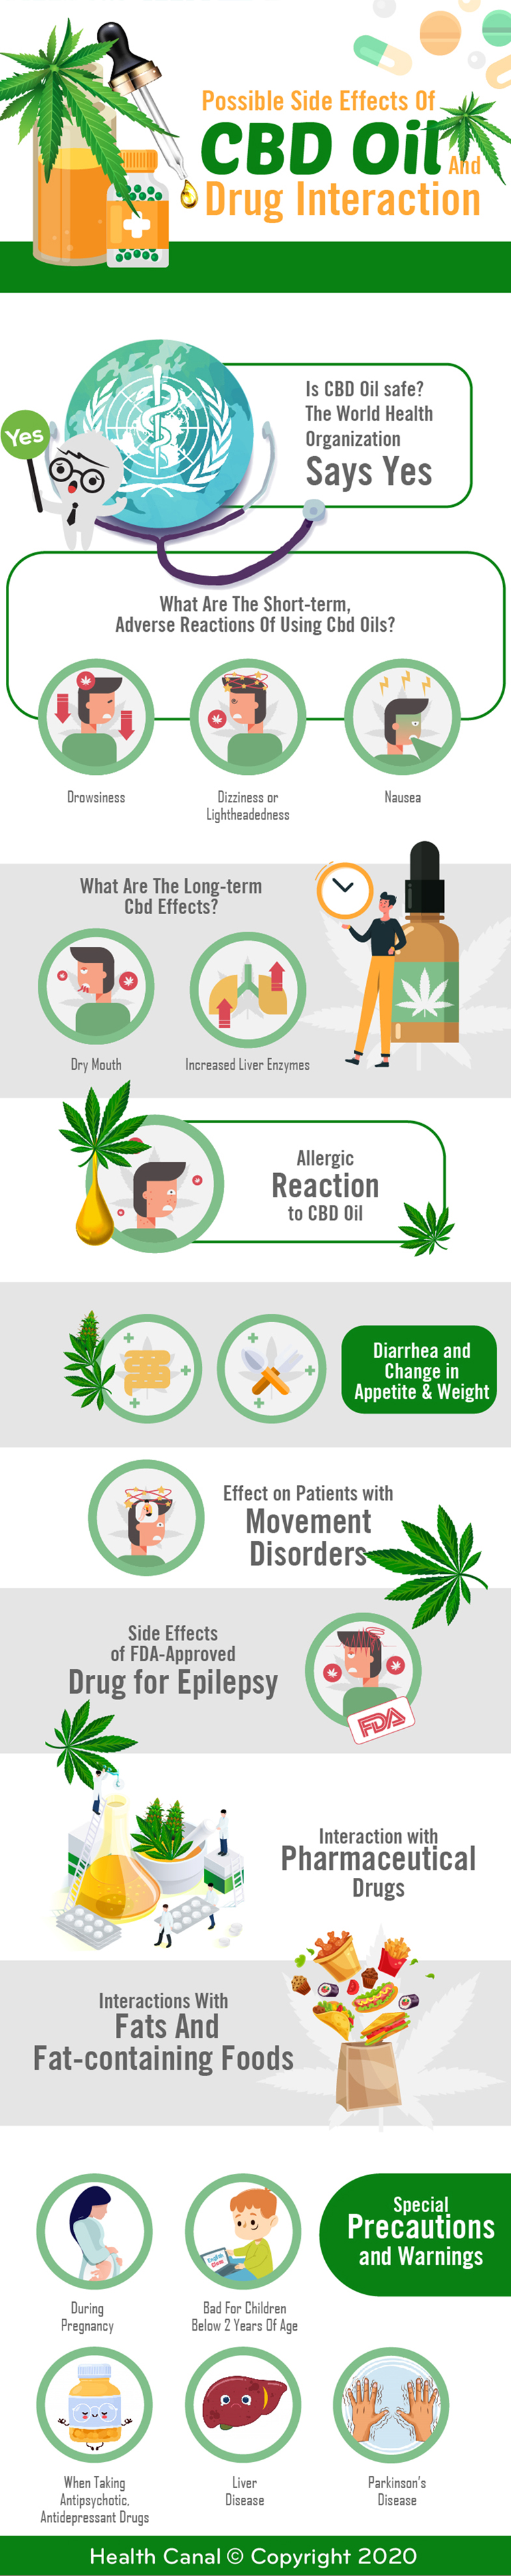 Possible Side Effects of CBD